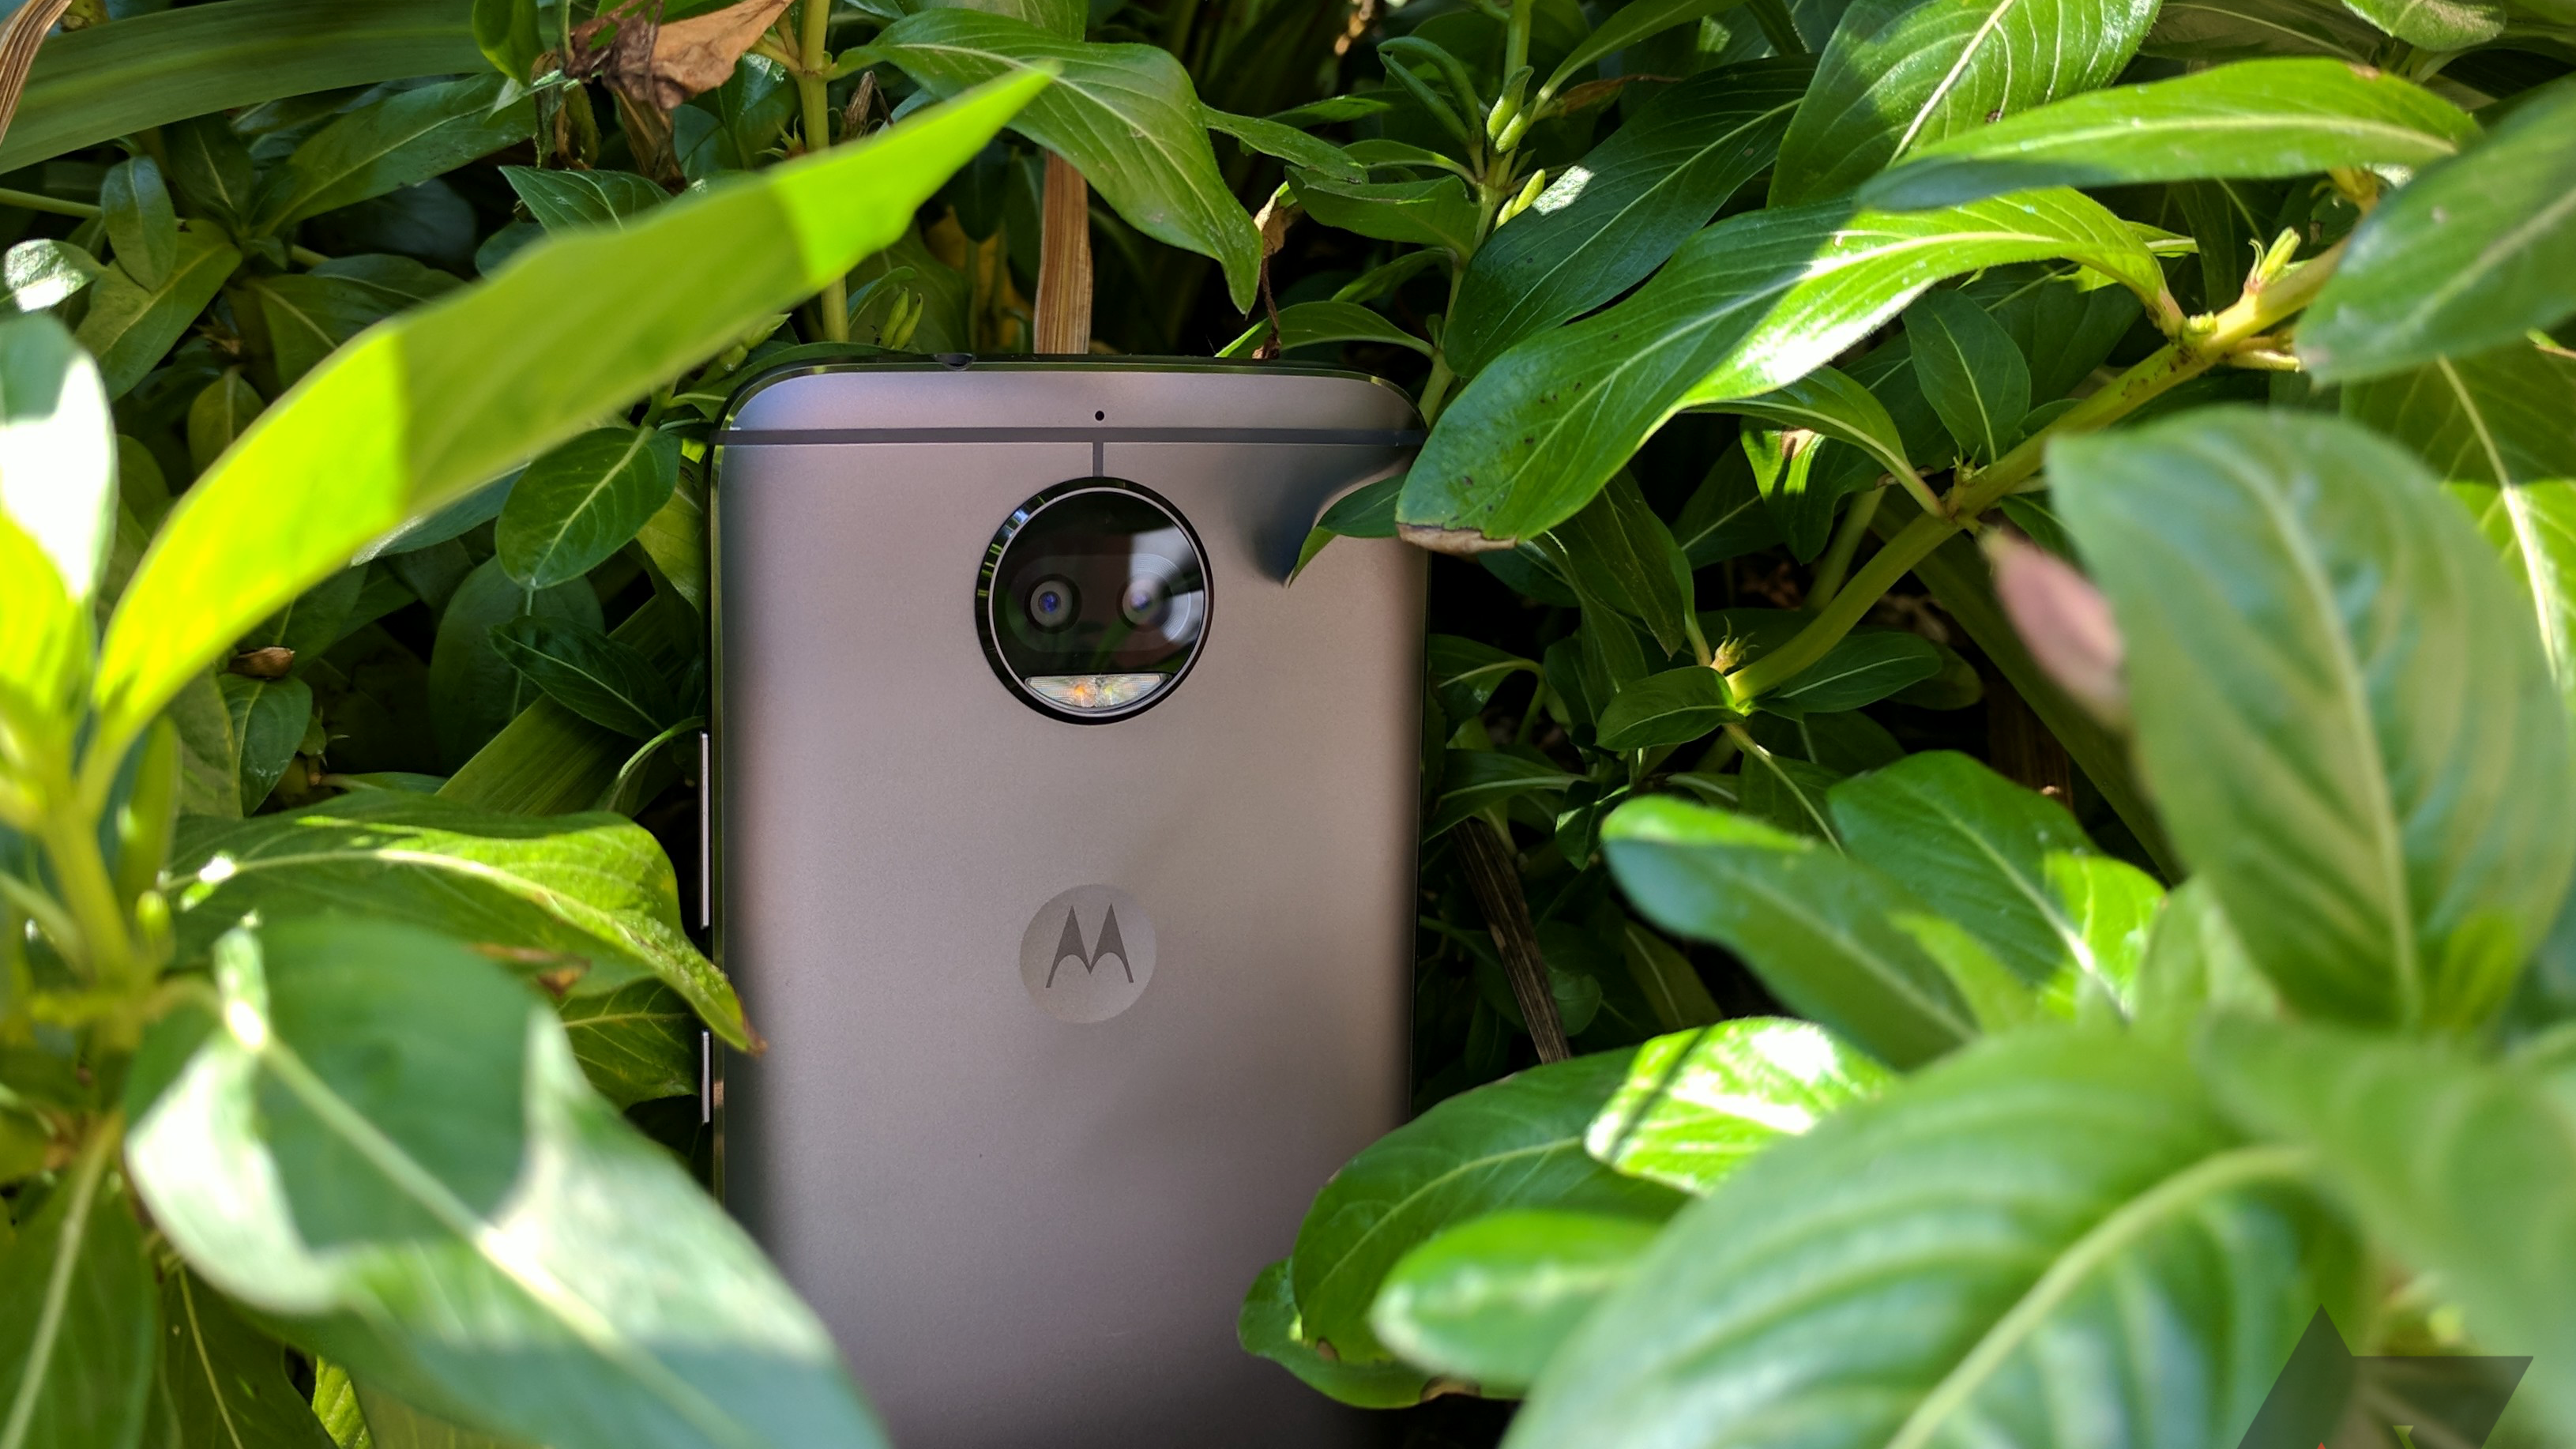 Moto G5S Plus kernel source code for Android 8 1 Oreo is out